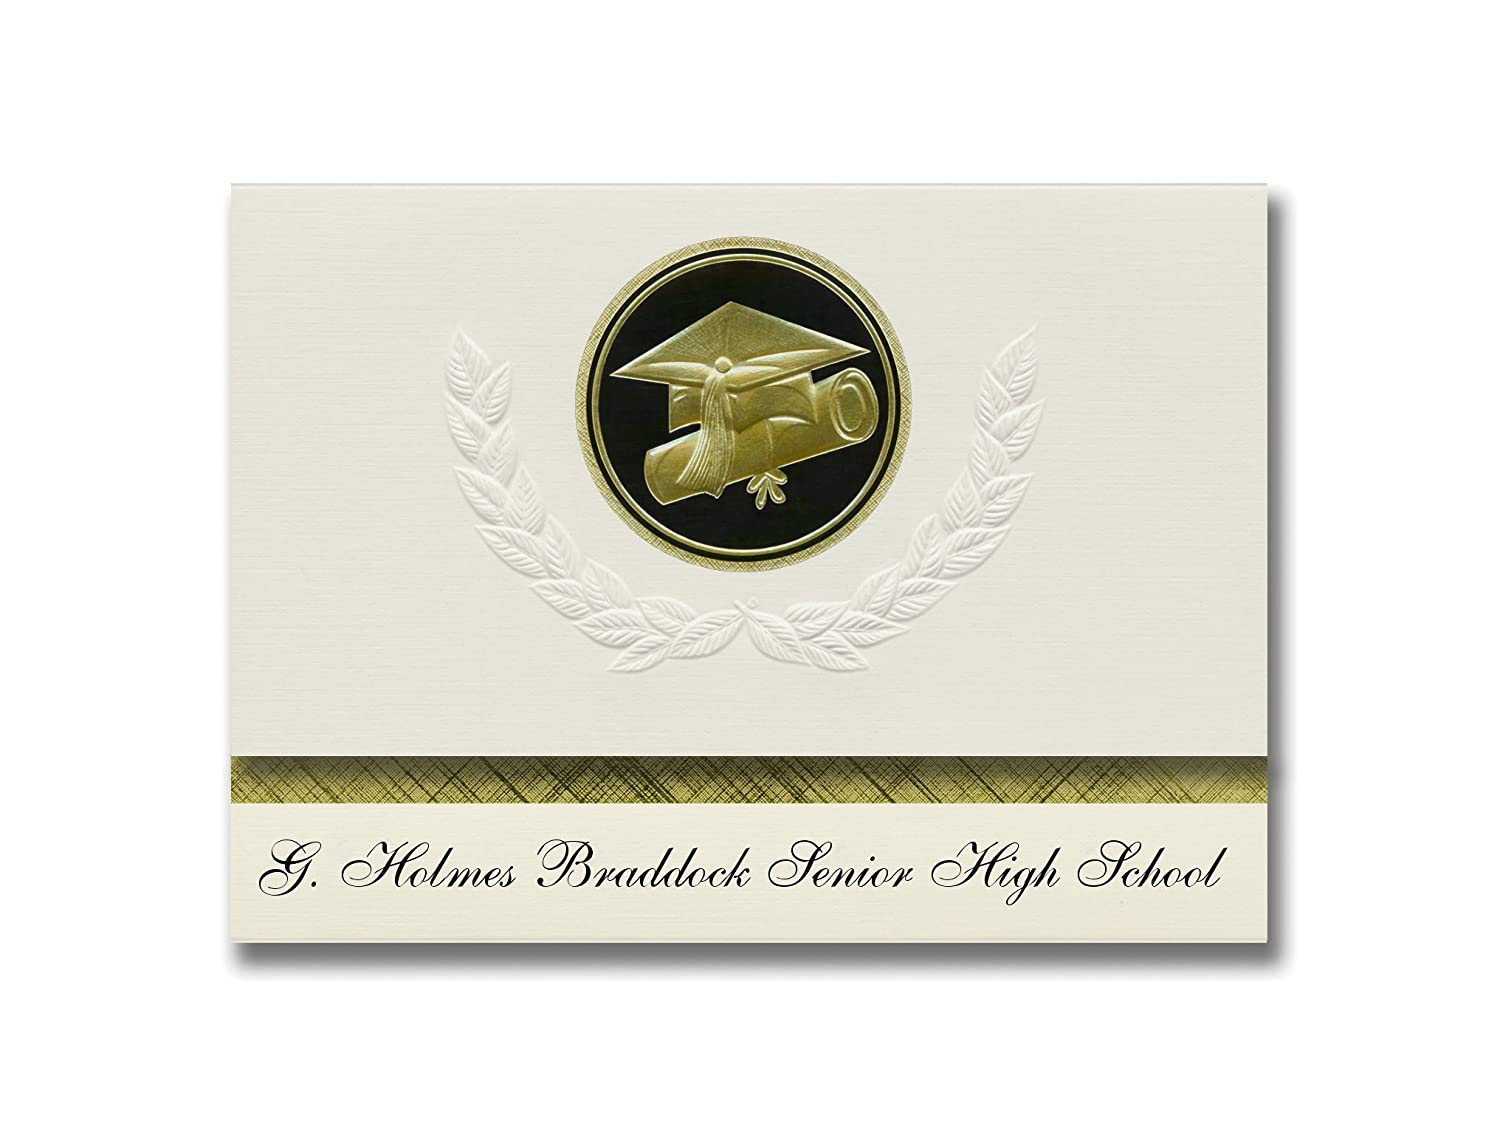 Signature Announcements G. Holmes Braddock Senior High School (Miami, FL) Graduation Announcements, Presidential Elite Pack 25 Cap & Diploma Seal. Black & Gold.